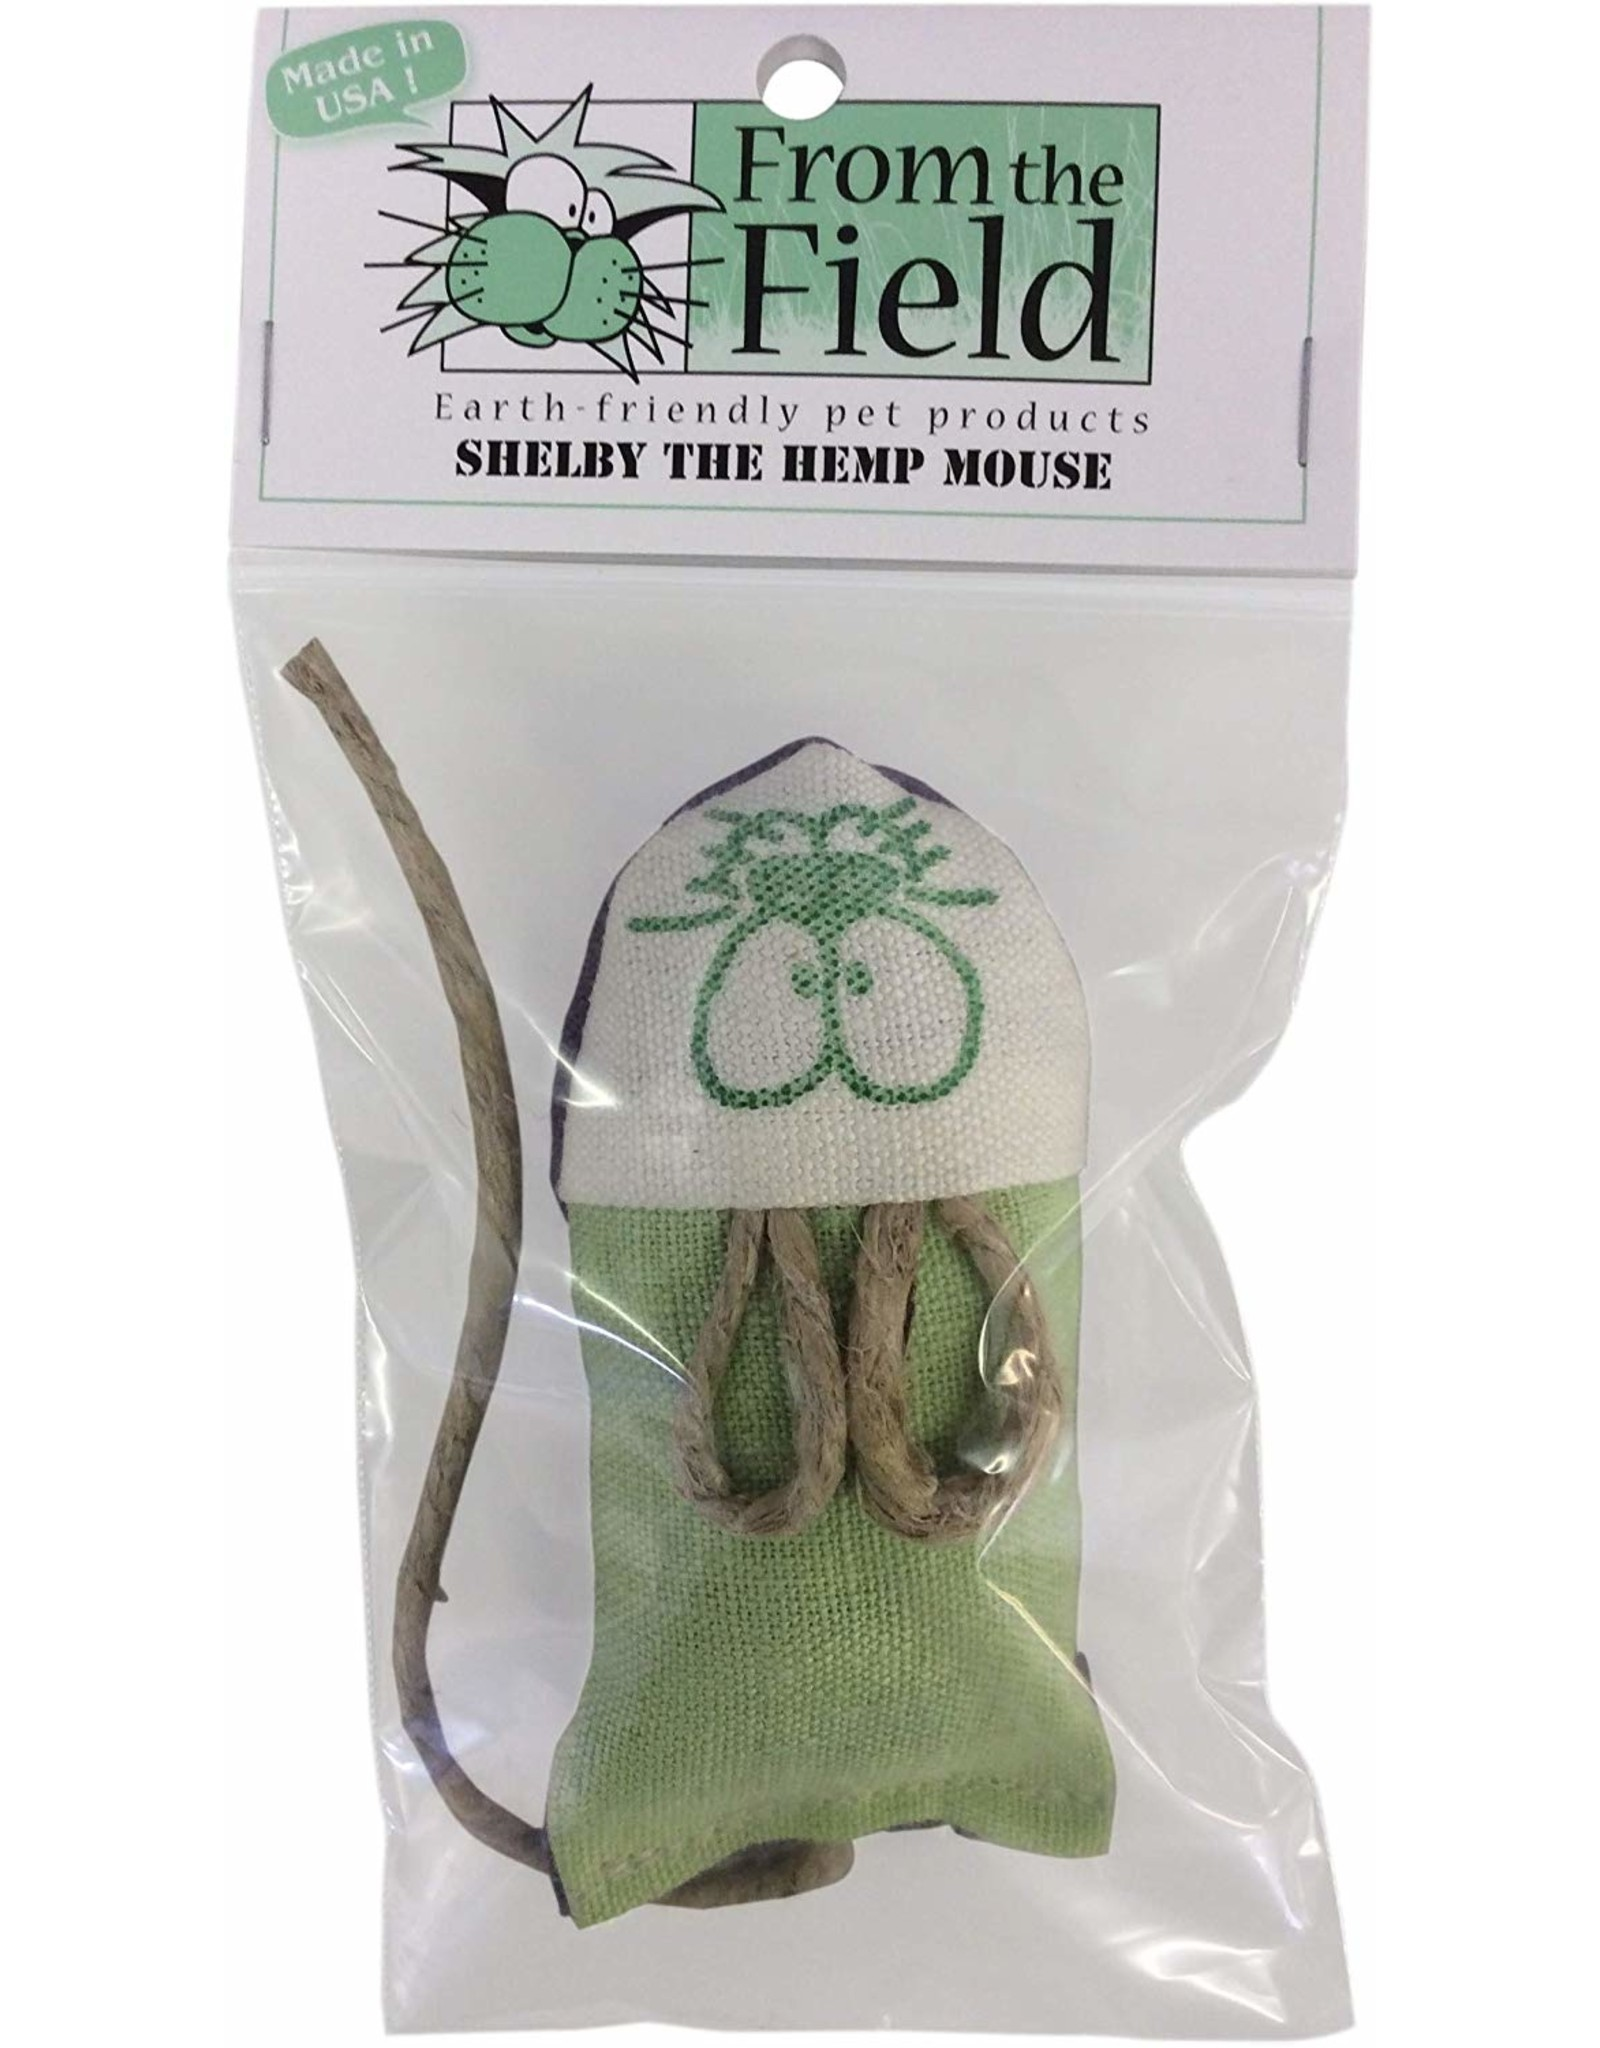 From The Field From the Field Shelby the Refillable Hemp Mouse